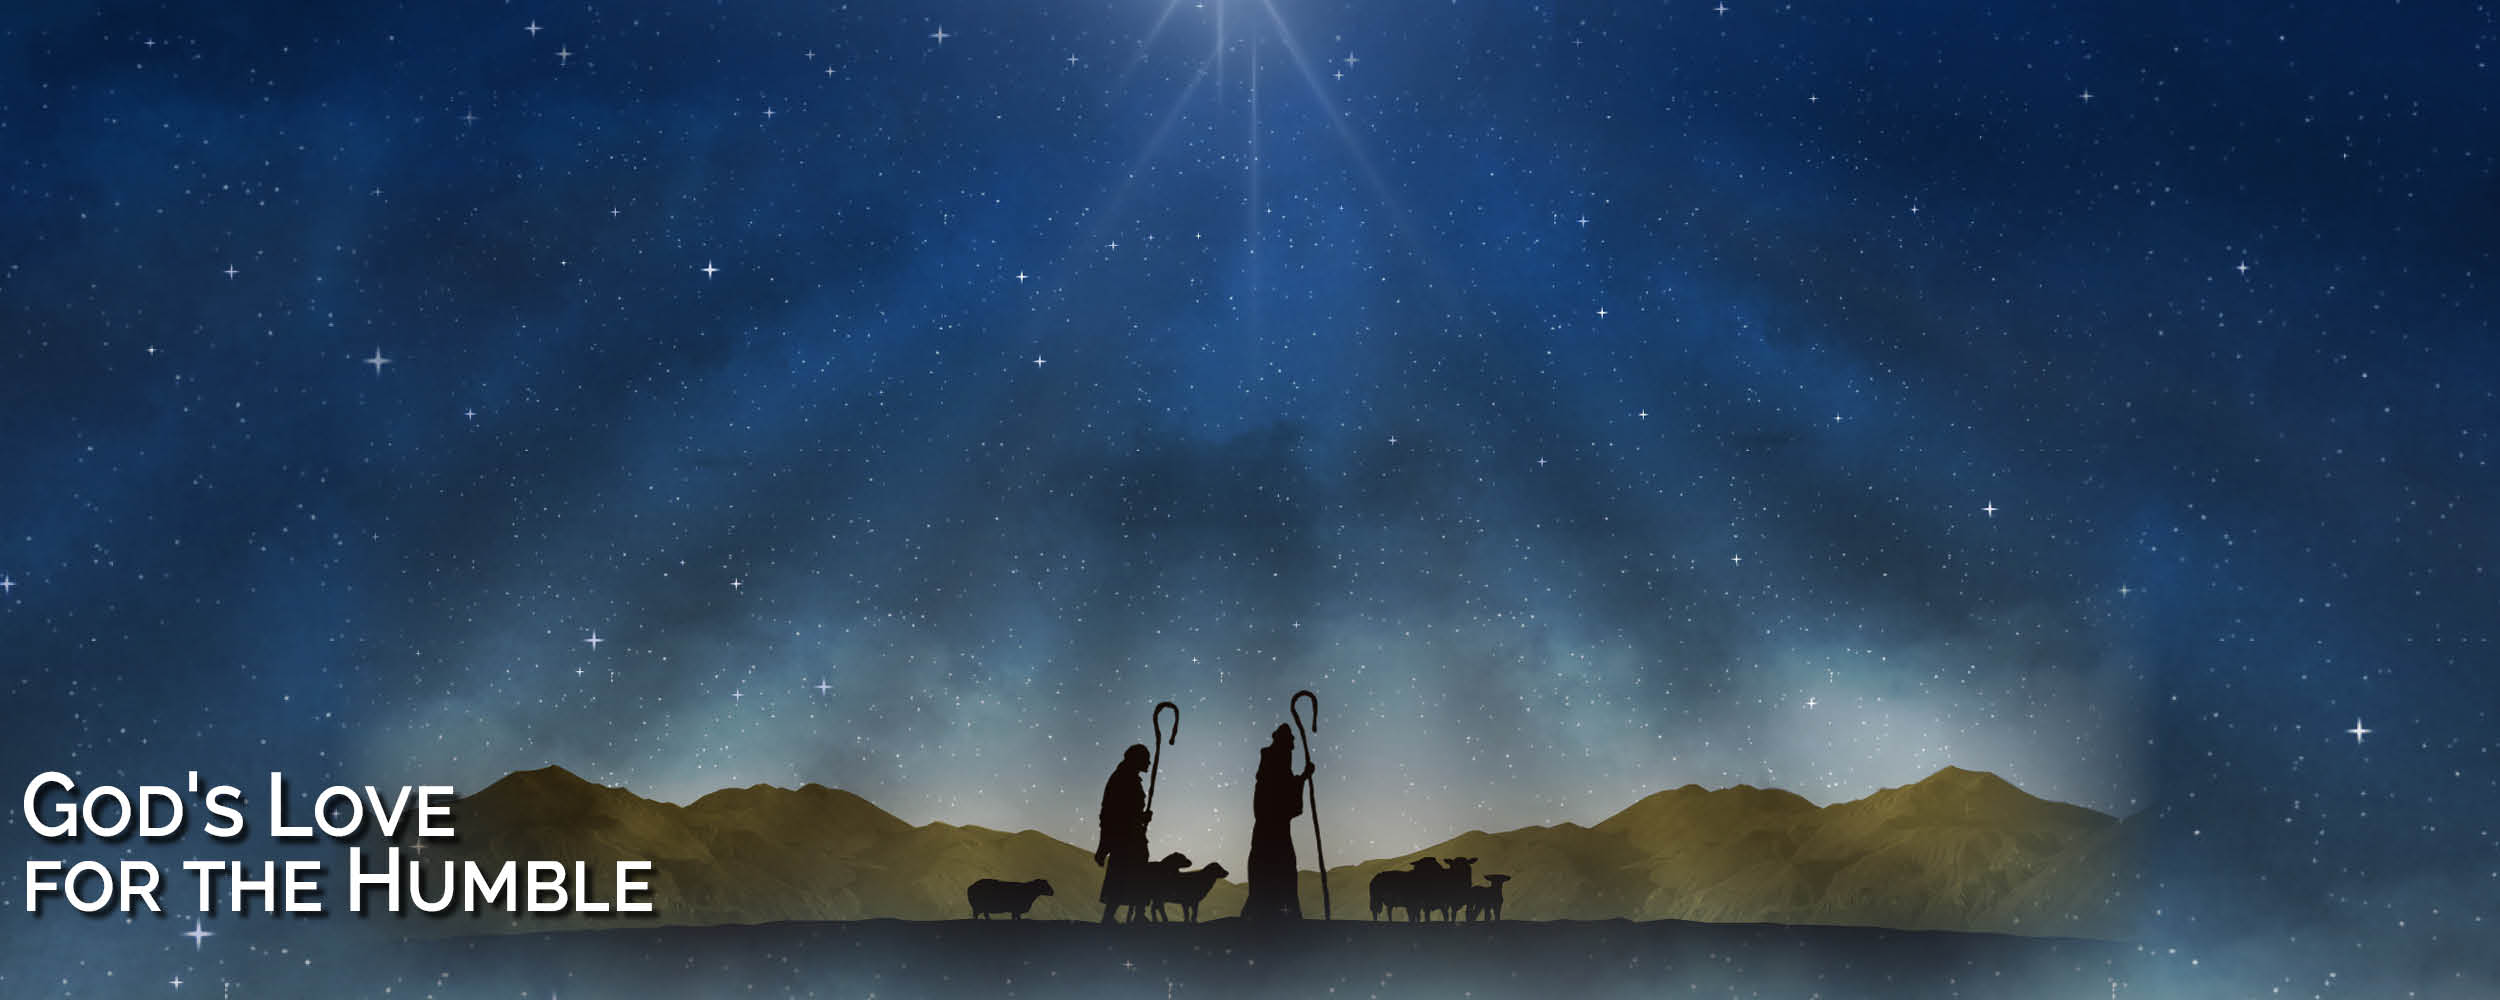 God's Love for the Humble, Children's Christmas Message